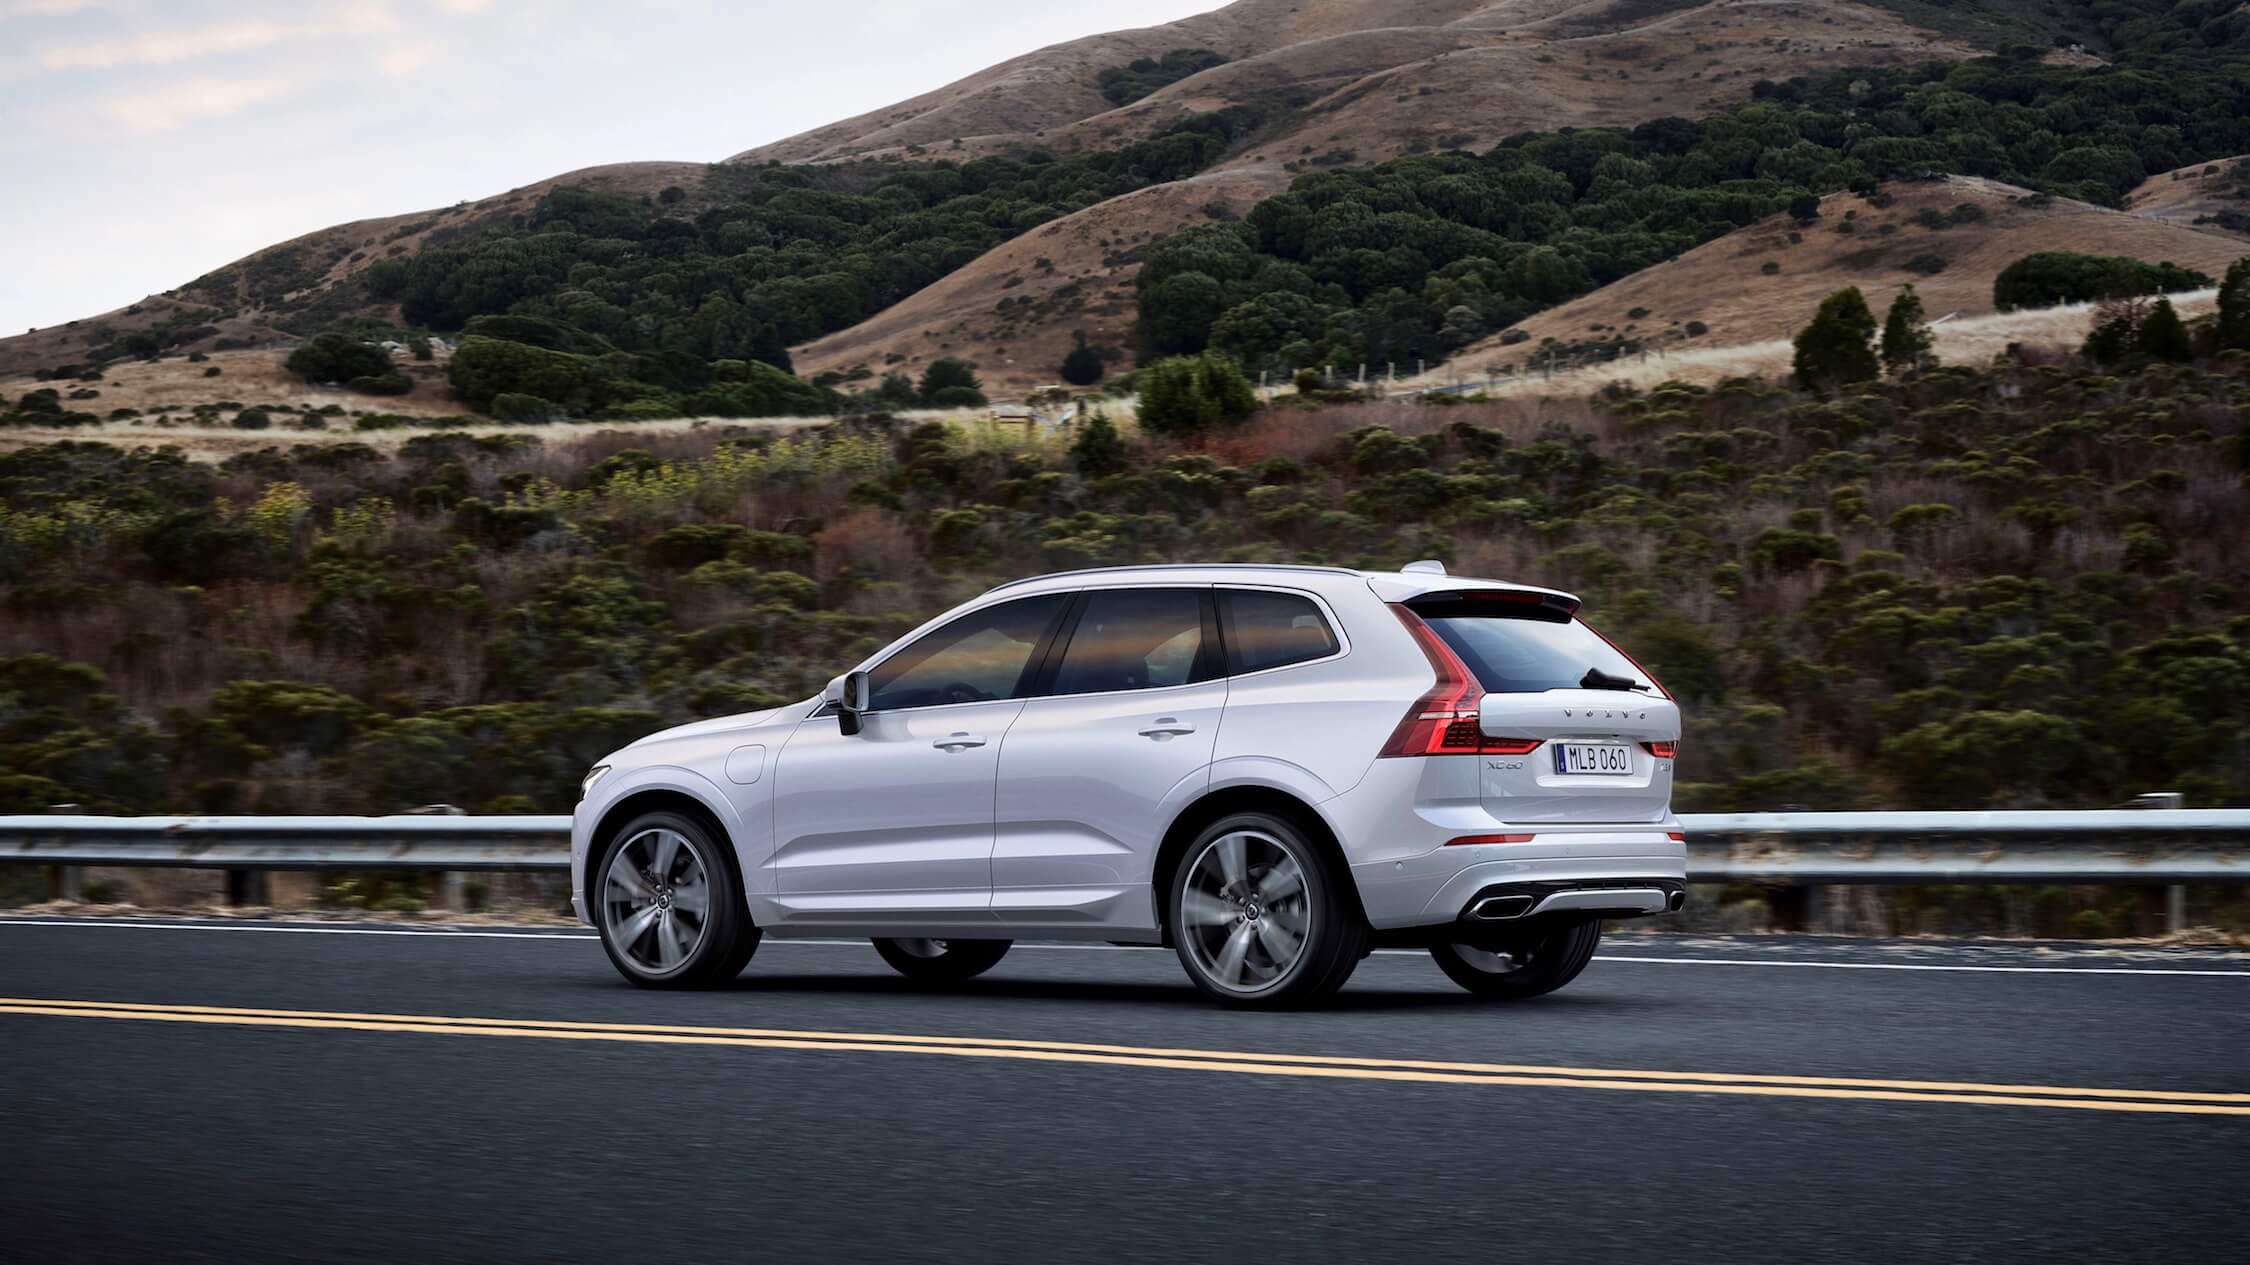 Volvo XC60 three-quarter view